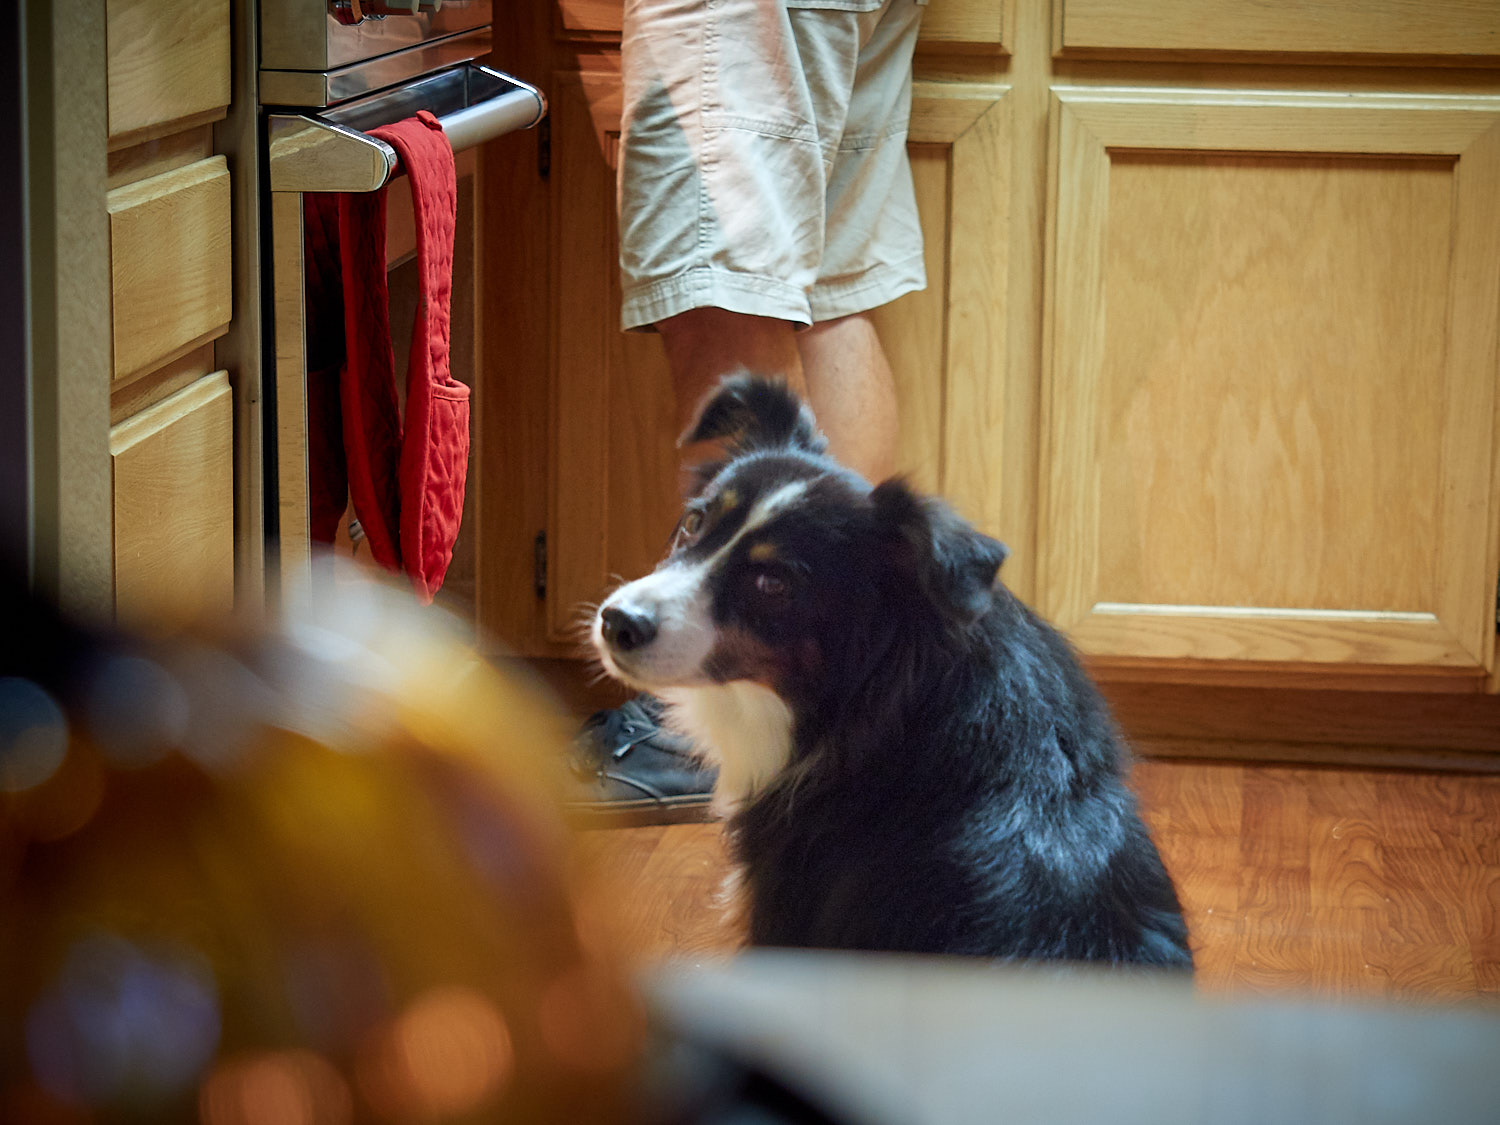 Riley patiently waiting for food…